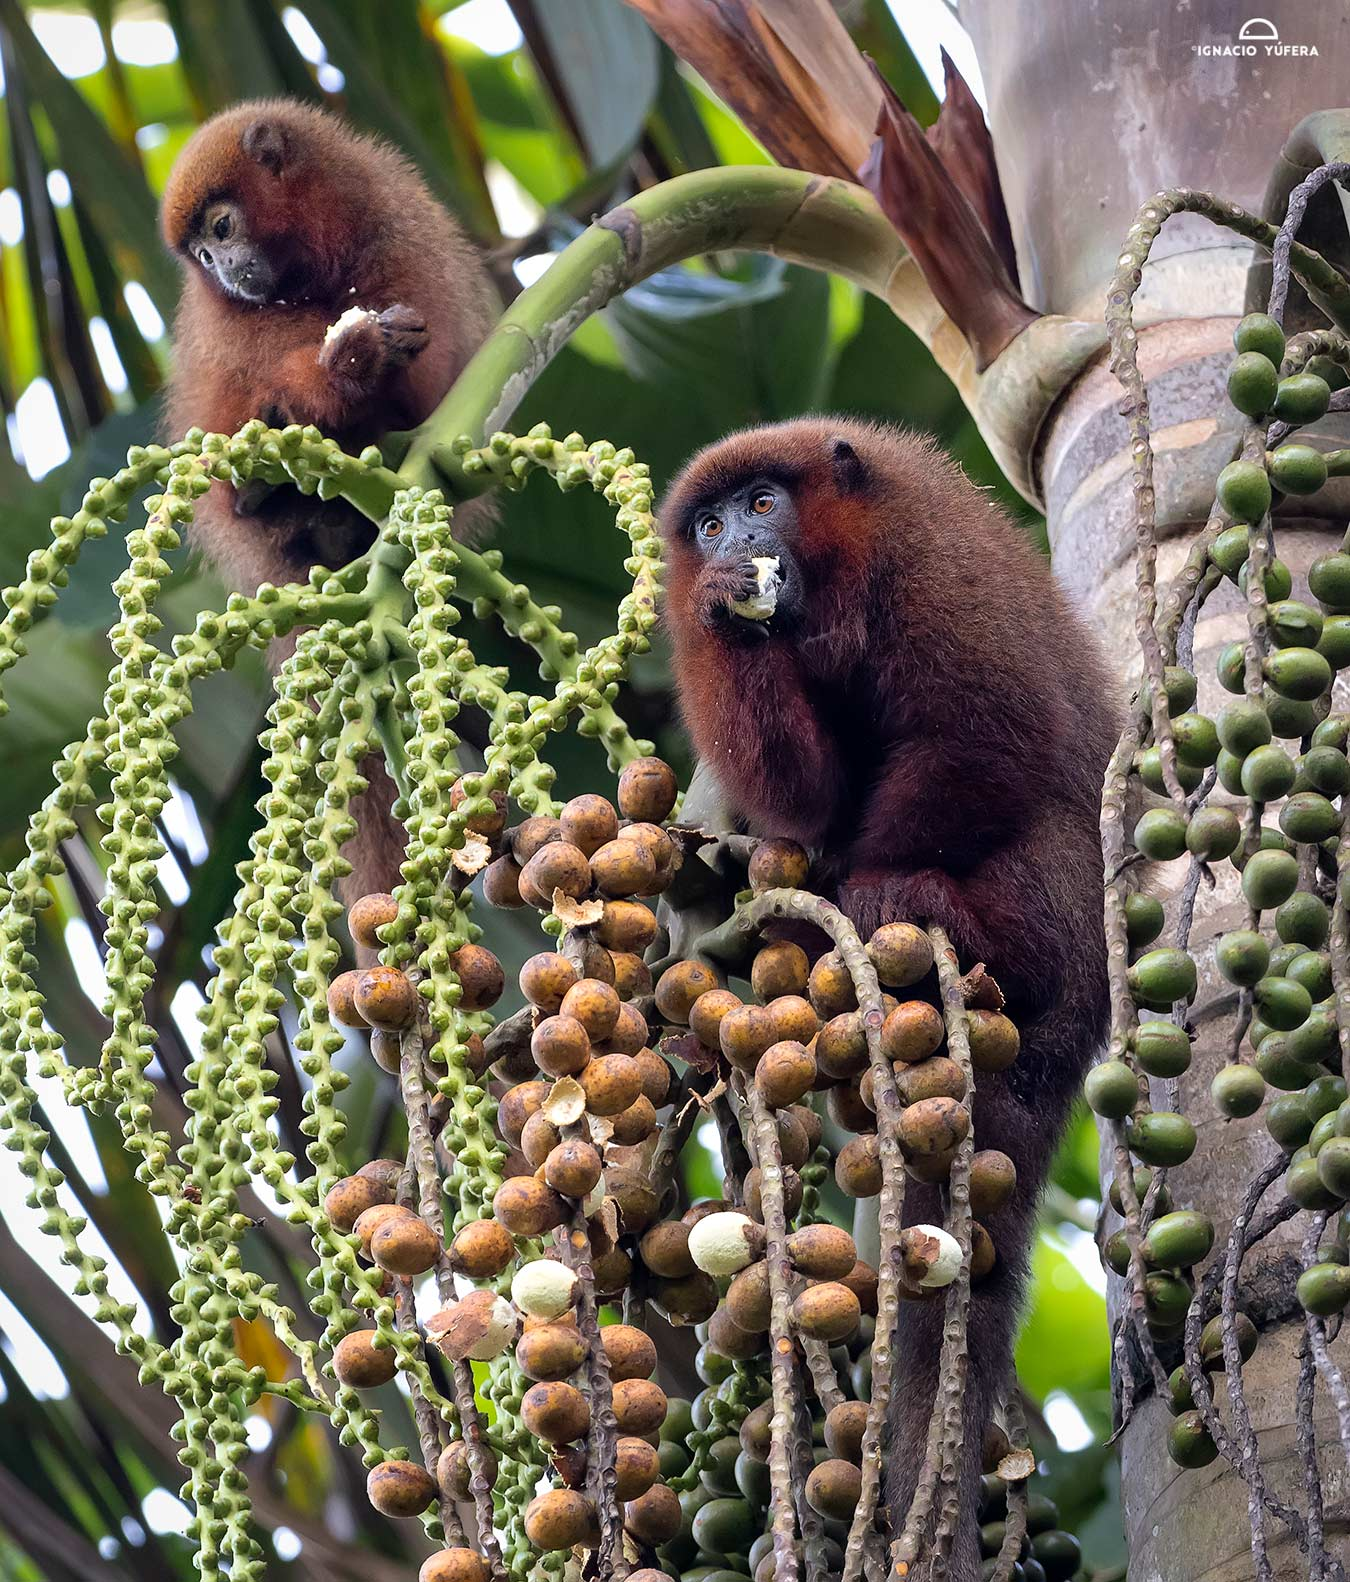 Brown Titi Monkeys (Plecturocebus brunneus), feeding on palm fruit, Madre de Dios, Peru